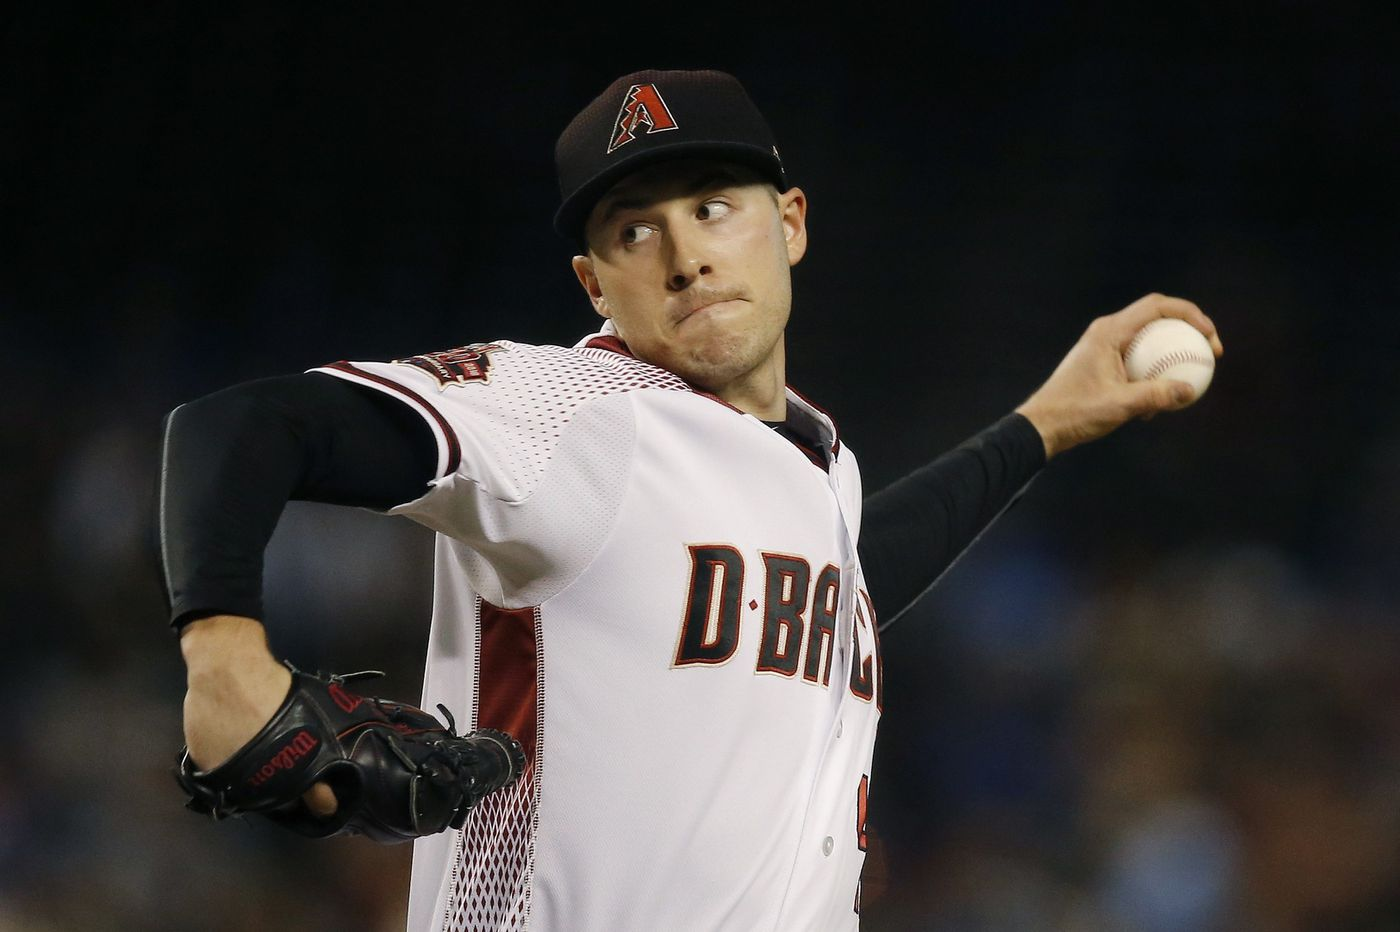 Patrick Corbin is headed for a nine-figure contract and the Phillies must decide if he's worth it